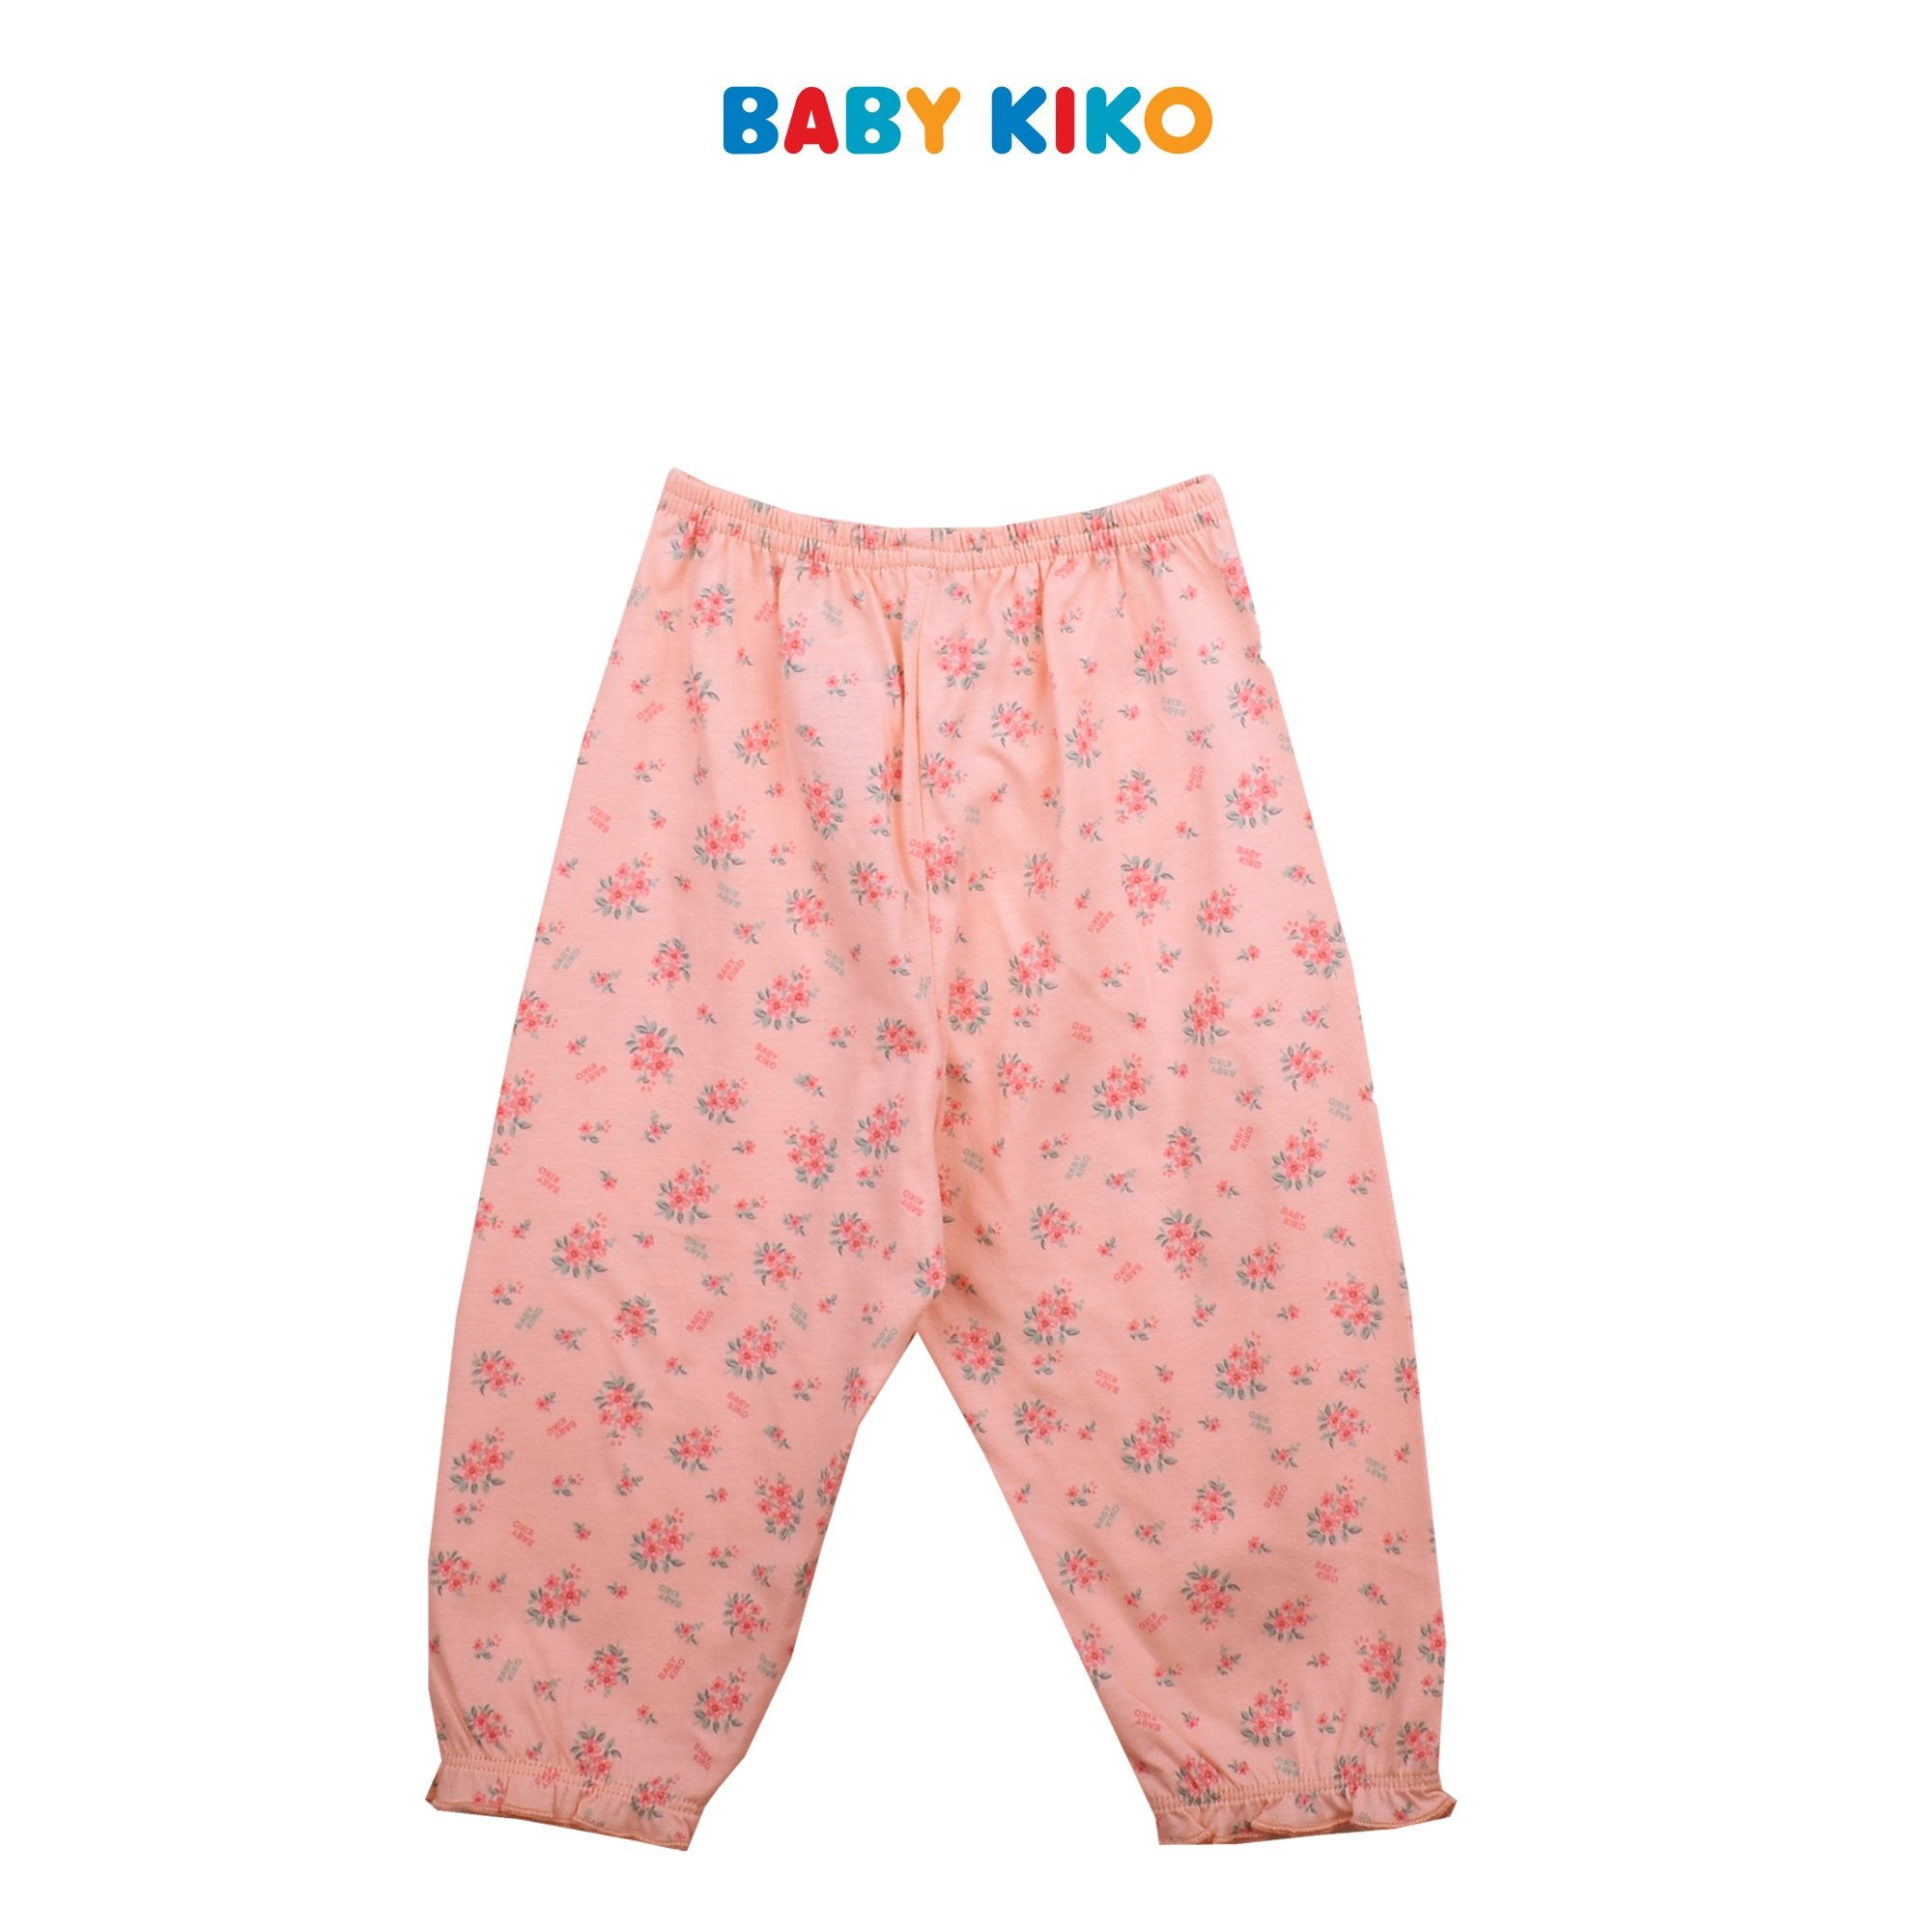 BABY KIKO BABY GIRL SLEEP WEAR LONG SLEEVE LONG PANTS SUIT - LIGHT PINK B924104-4322-P1 : Buy Baby KIKO online at CMG.MY